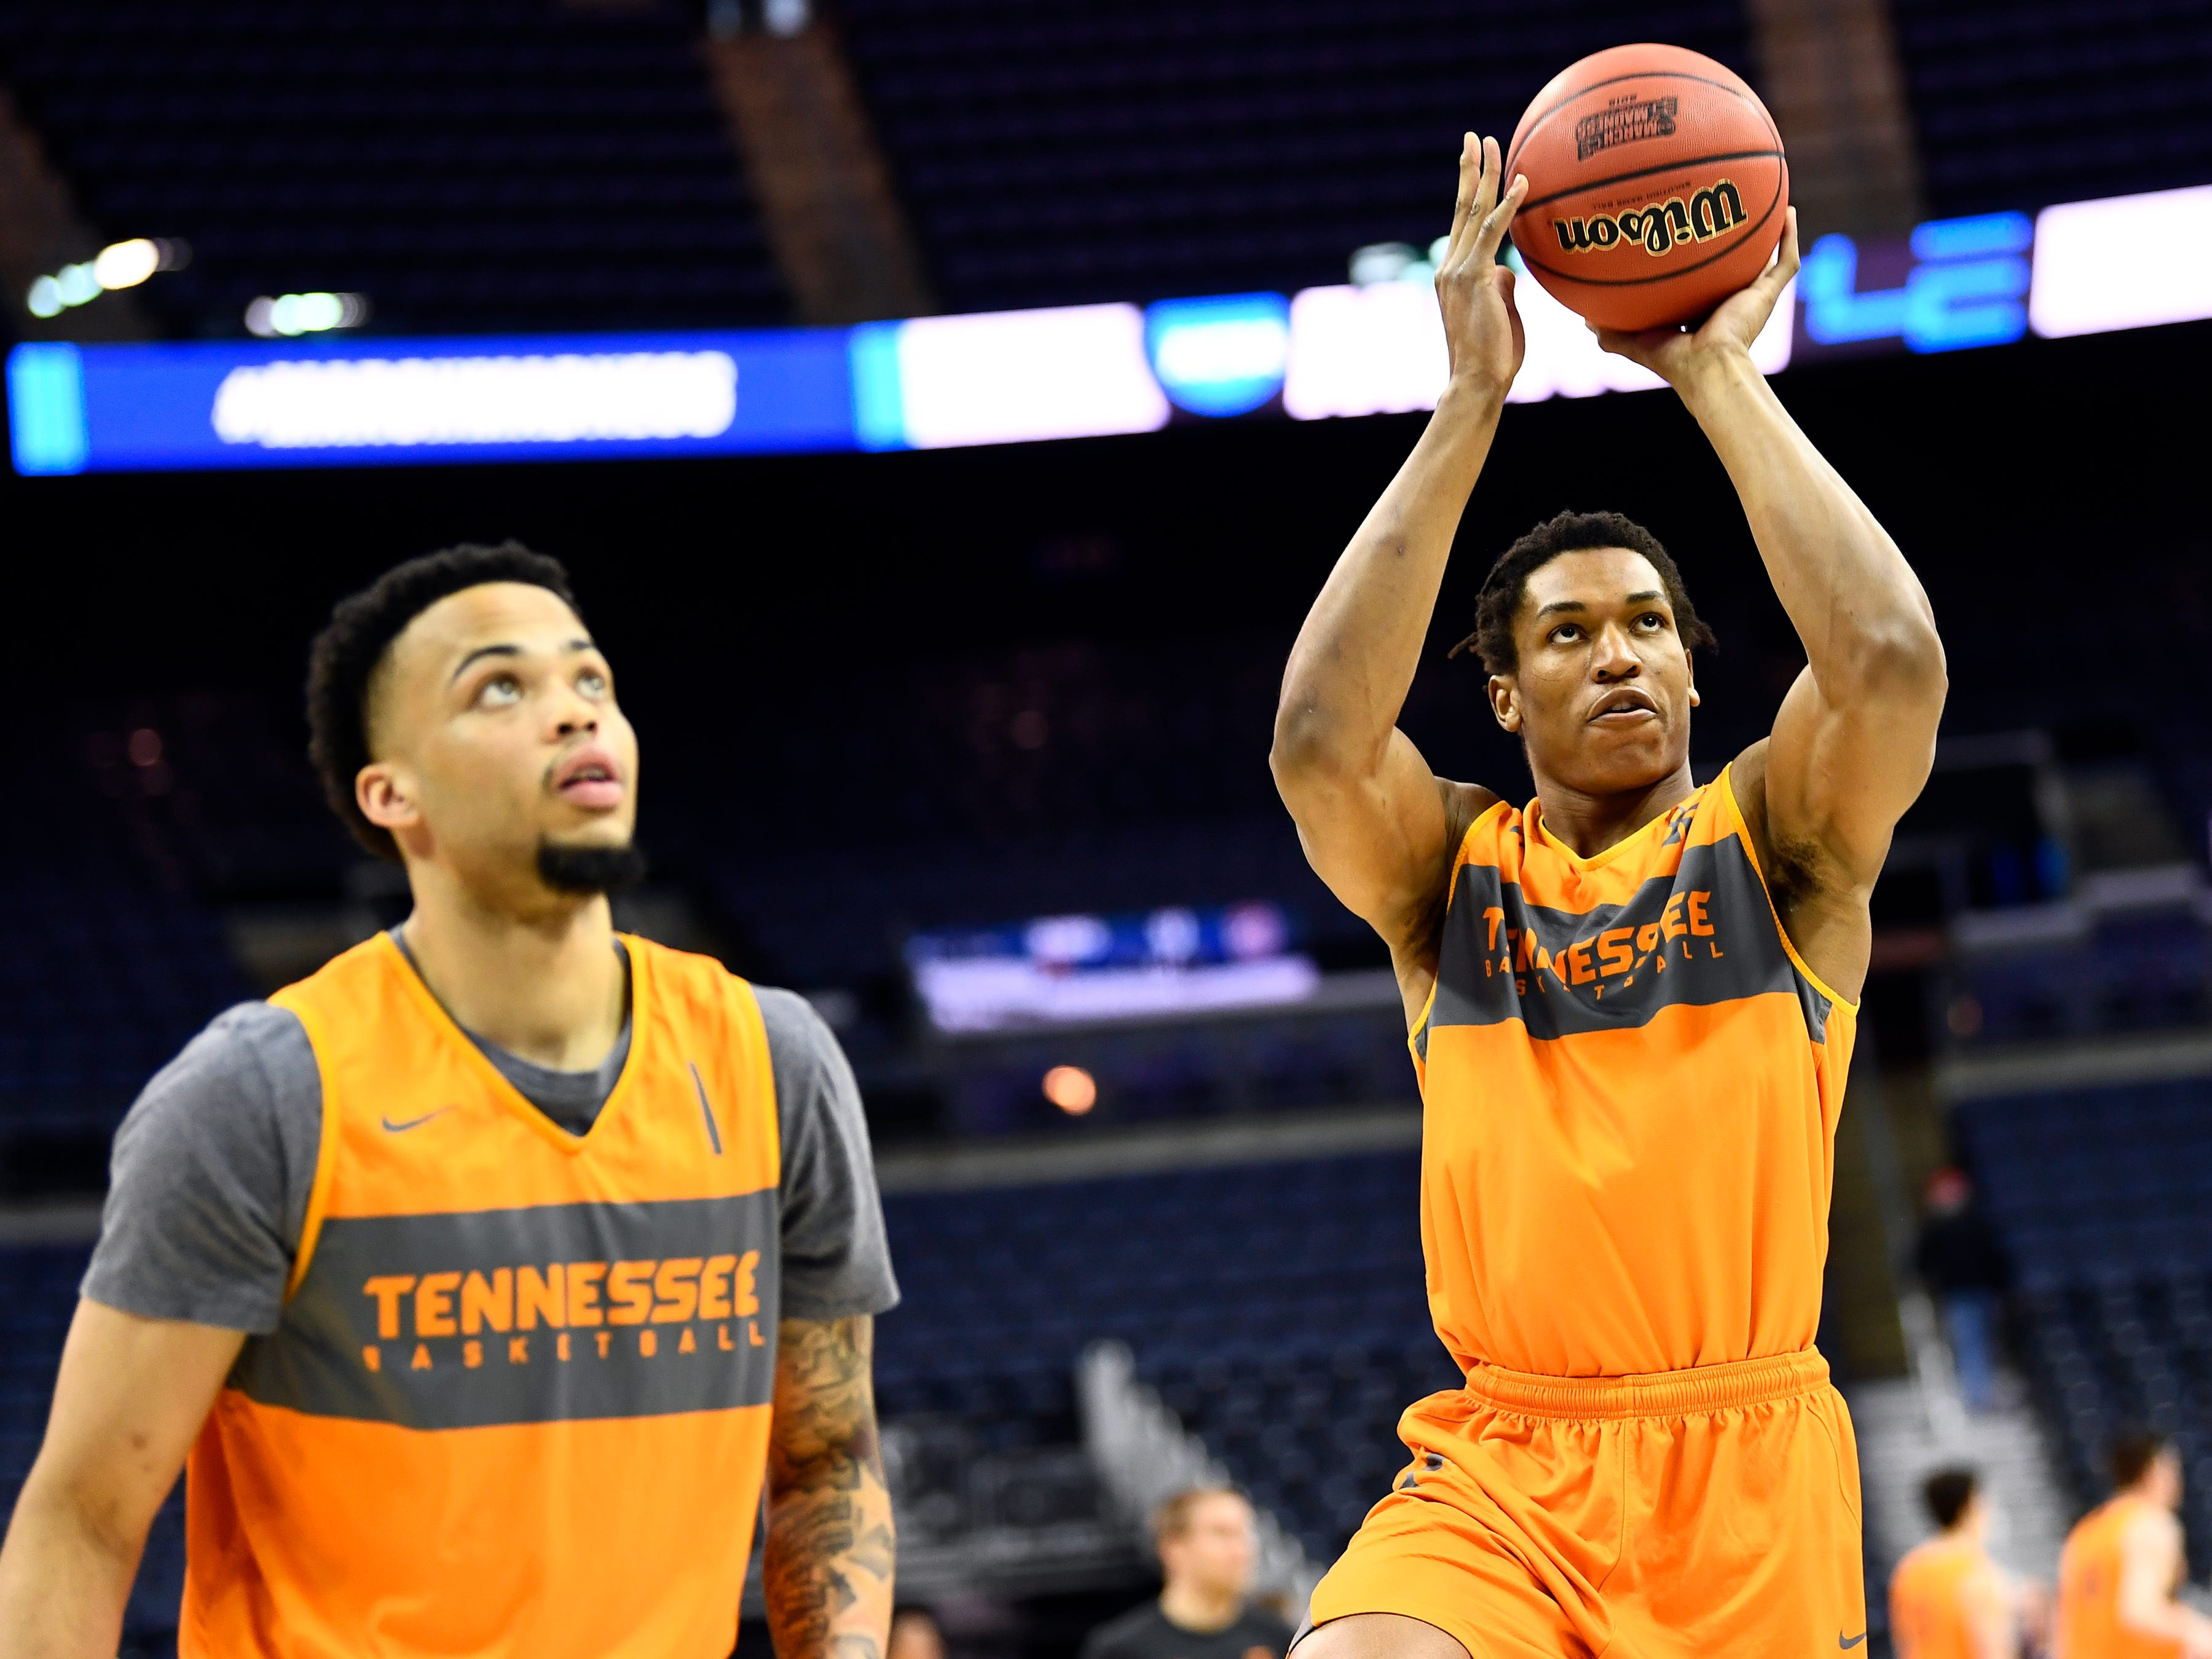 Tennessee guard/forward Yves Pons (35) shoots the ball during Tennessee's practice on Thursday, March 21, 2019, before their first round NCAA Tournament game against Colgate at Nationwide Arena in Columbus, Ohio.